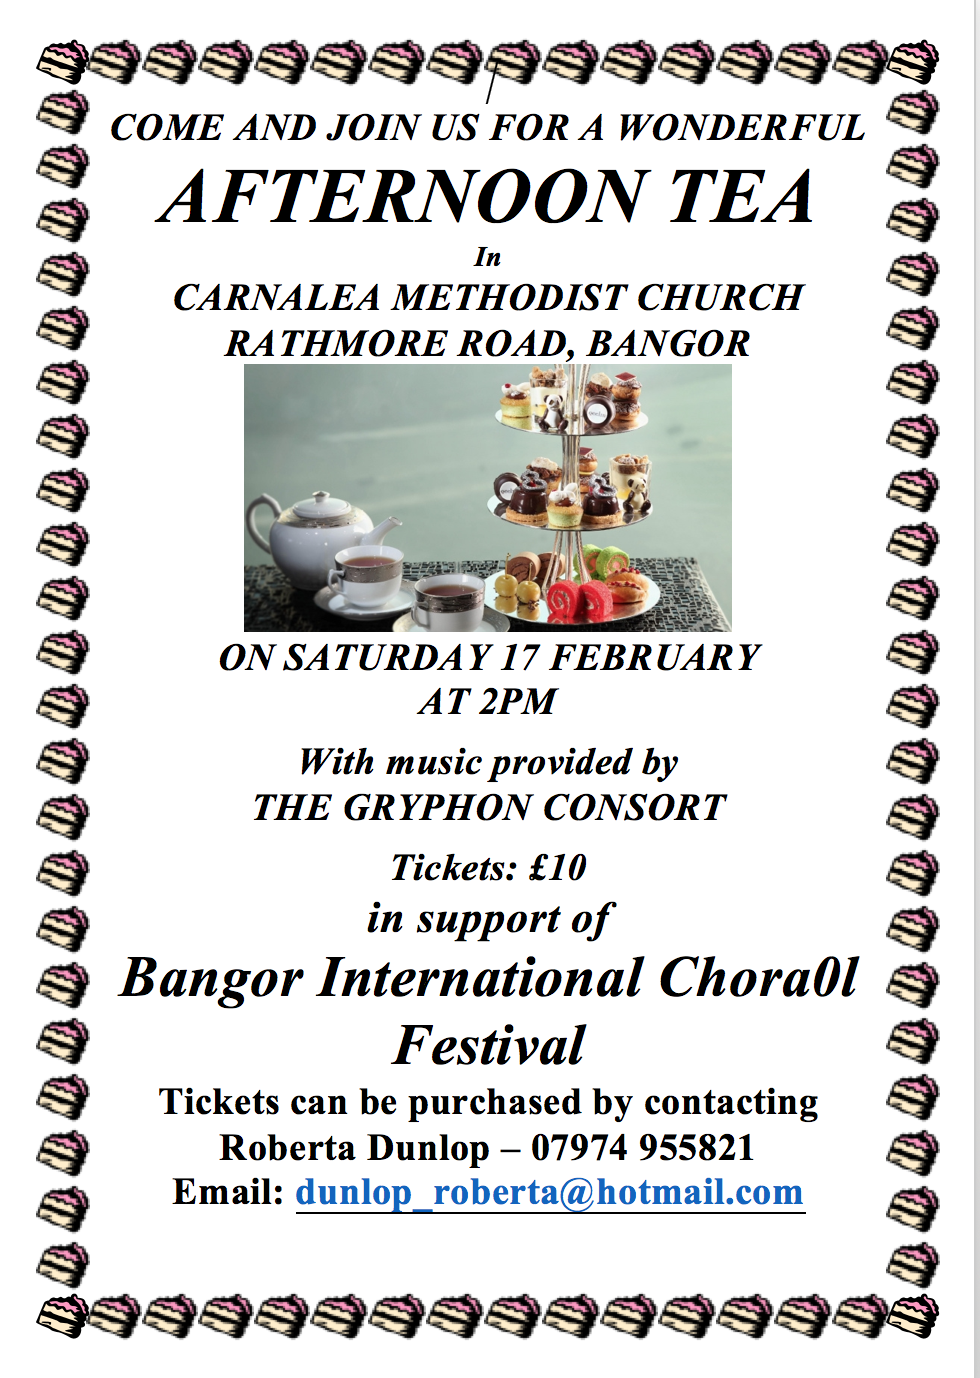 Bangor Choral Fesitival  Afternoon Tea fundraiser